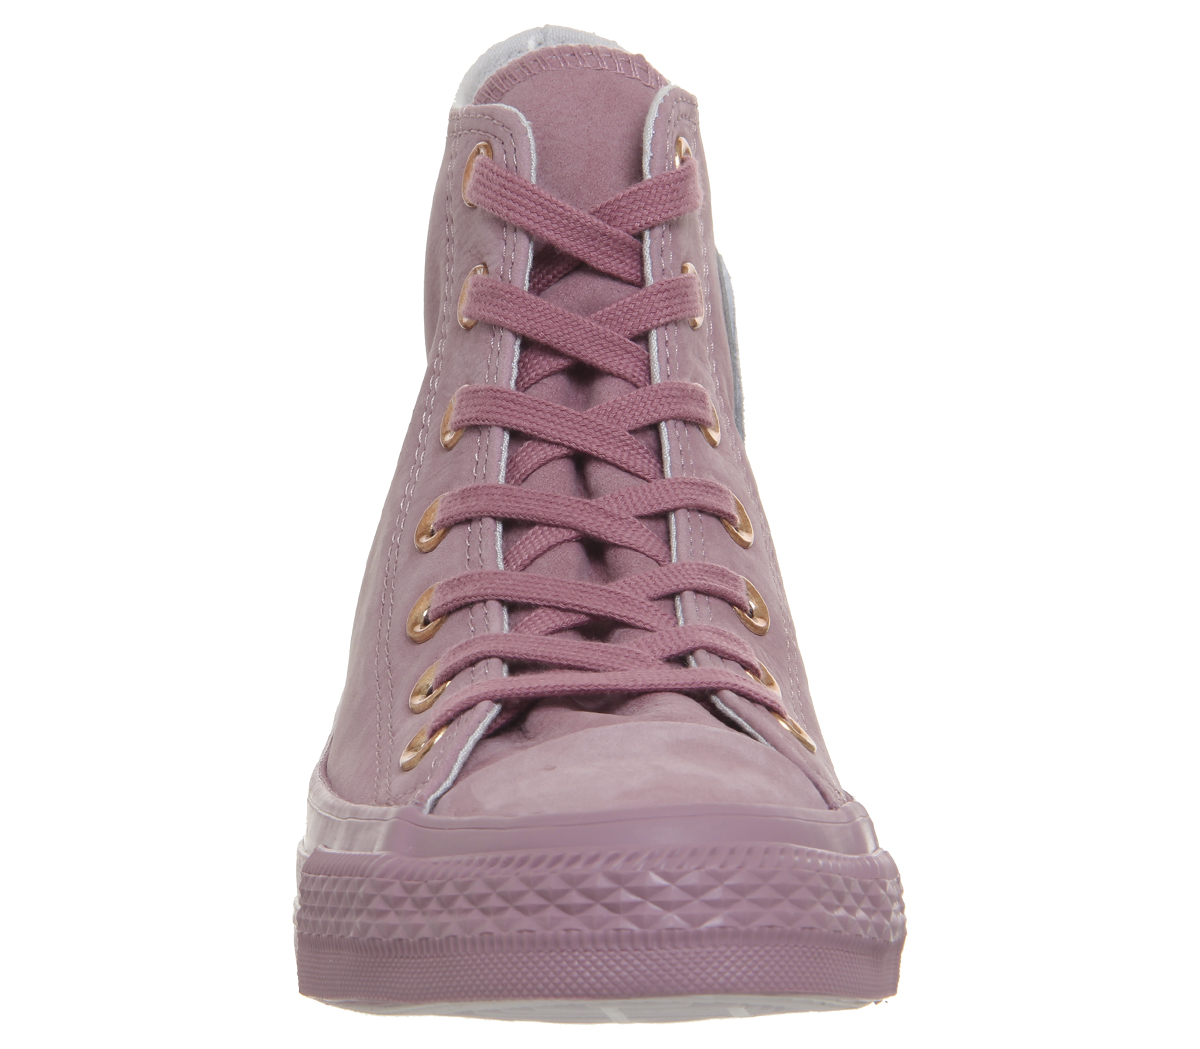 Womens Converse MOUSE All Star Hi Leather Trainers NOSTALGIA ROSE MOUSE Converse BLUSH GOLD EXC 0169c1